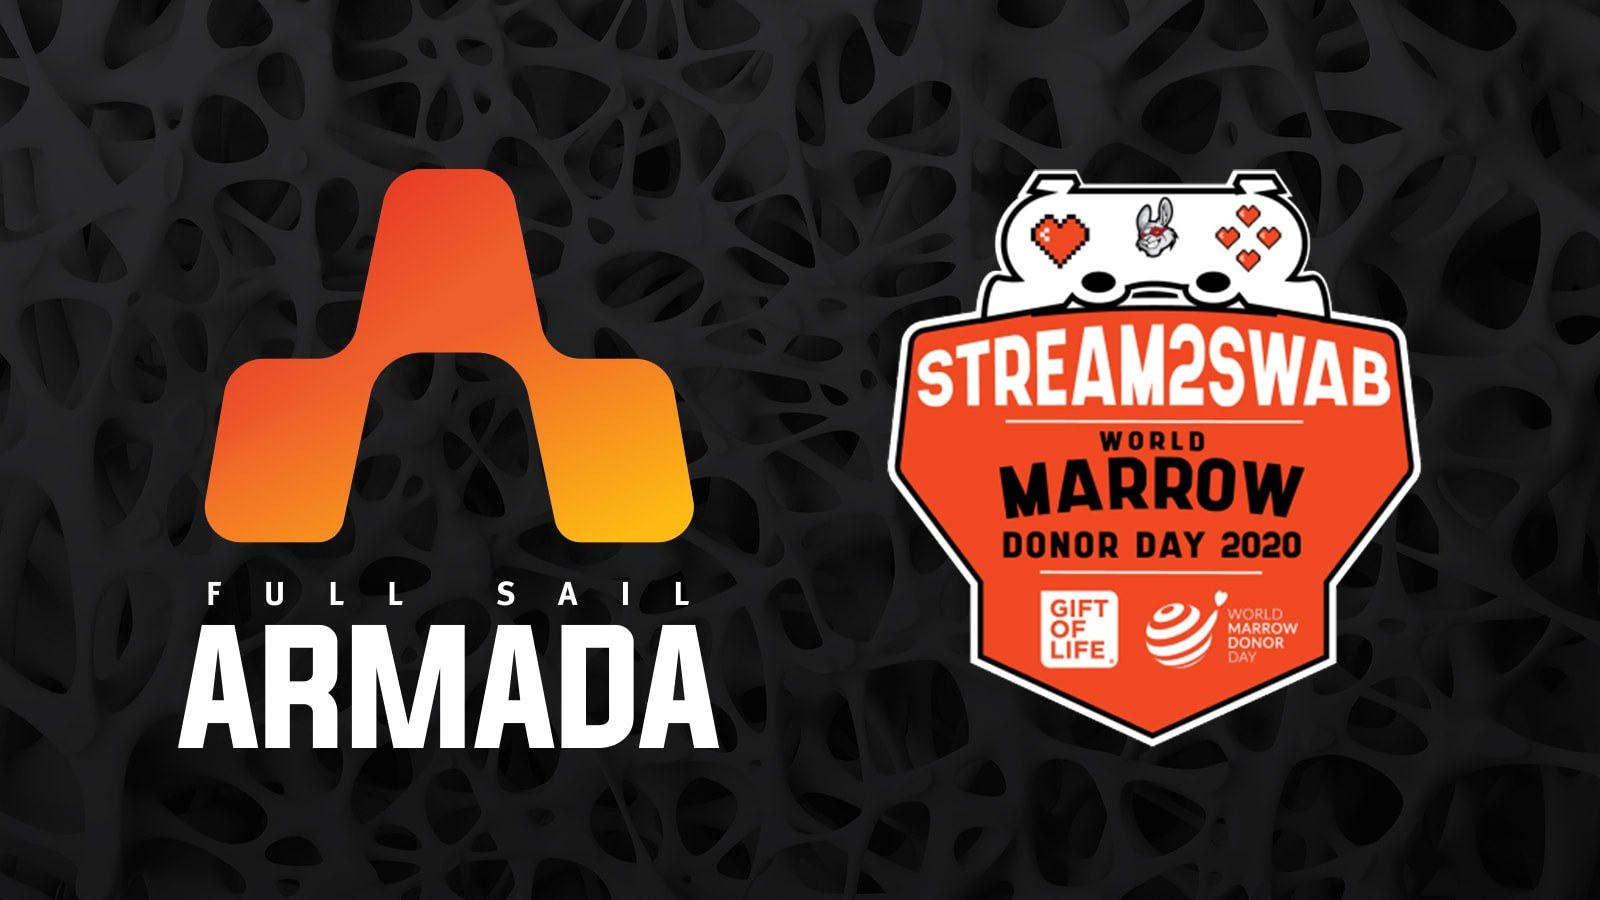 Full Sail Armada Athletes Take Part in World Marrow Donor Day - Hero image